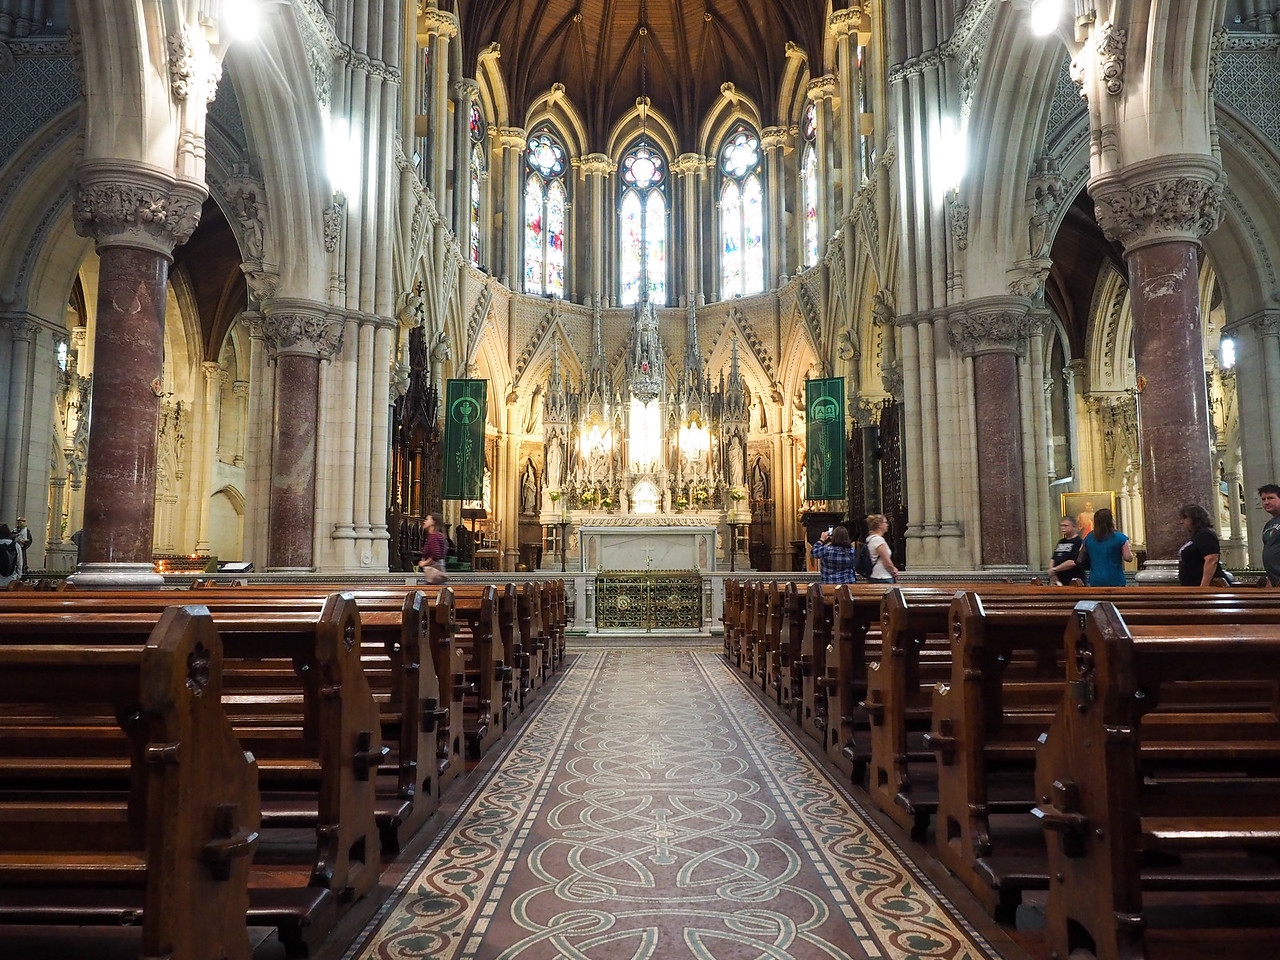 Inside St. Colman's Cathedral